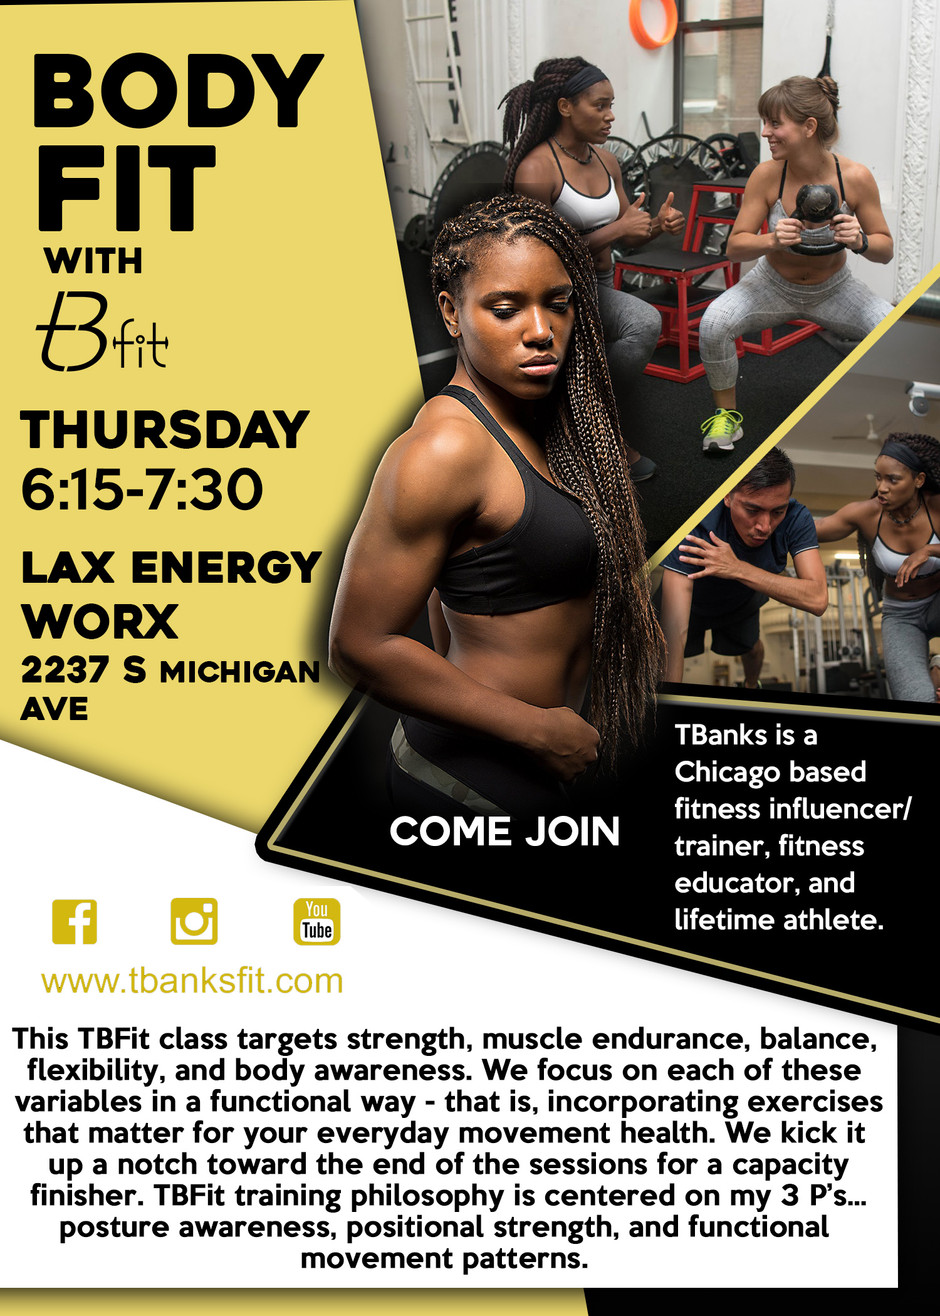 Body Fit at Lax Energy Worx